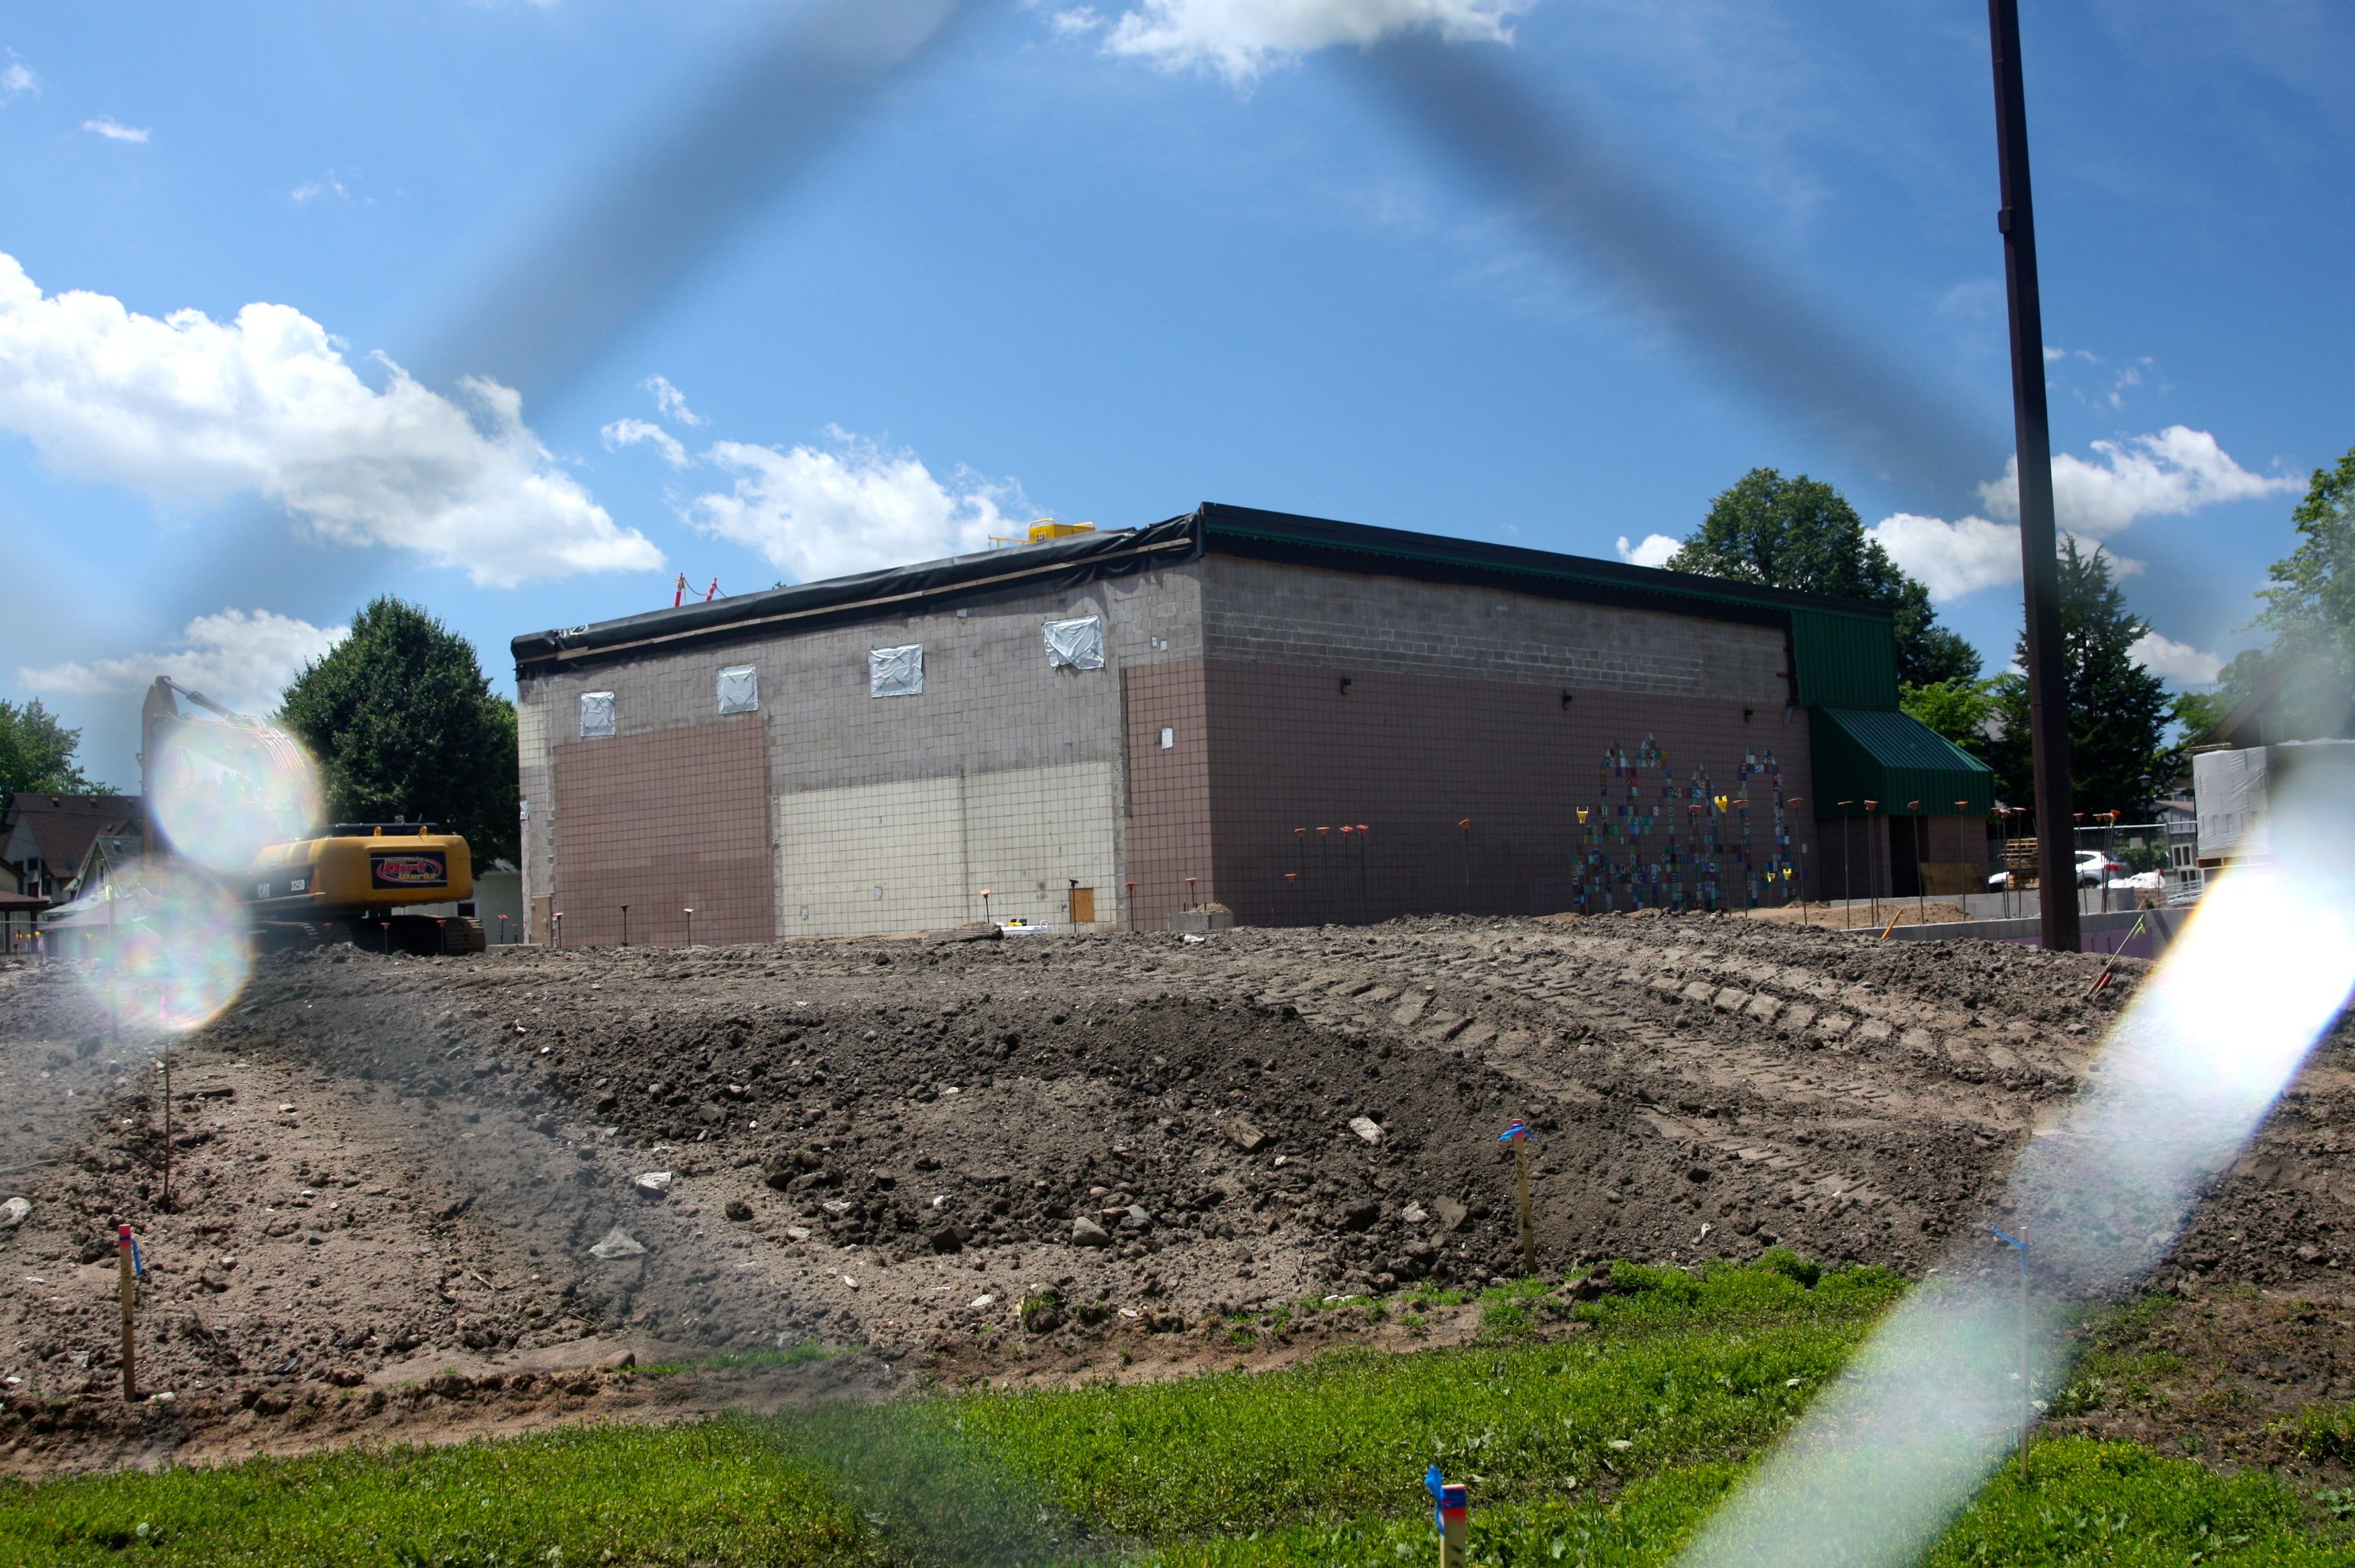 Work began this past spring on the expansion and remodeling of the Palace Recreation Center. This is the part of the original structure, built in 1974, that will be part of the improved rec center.